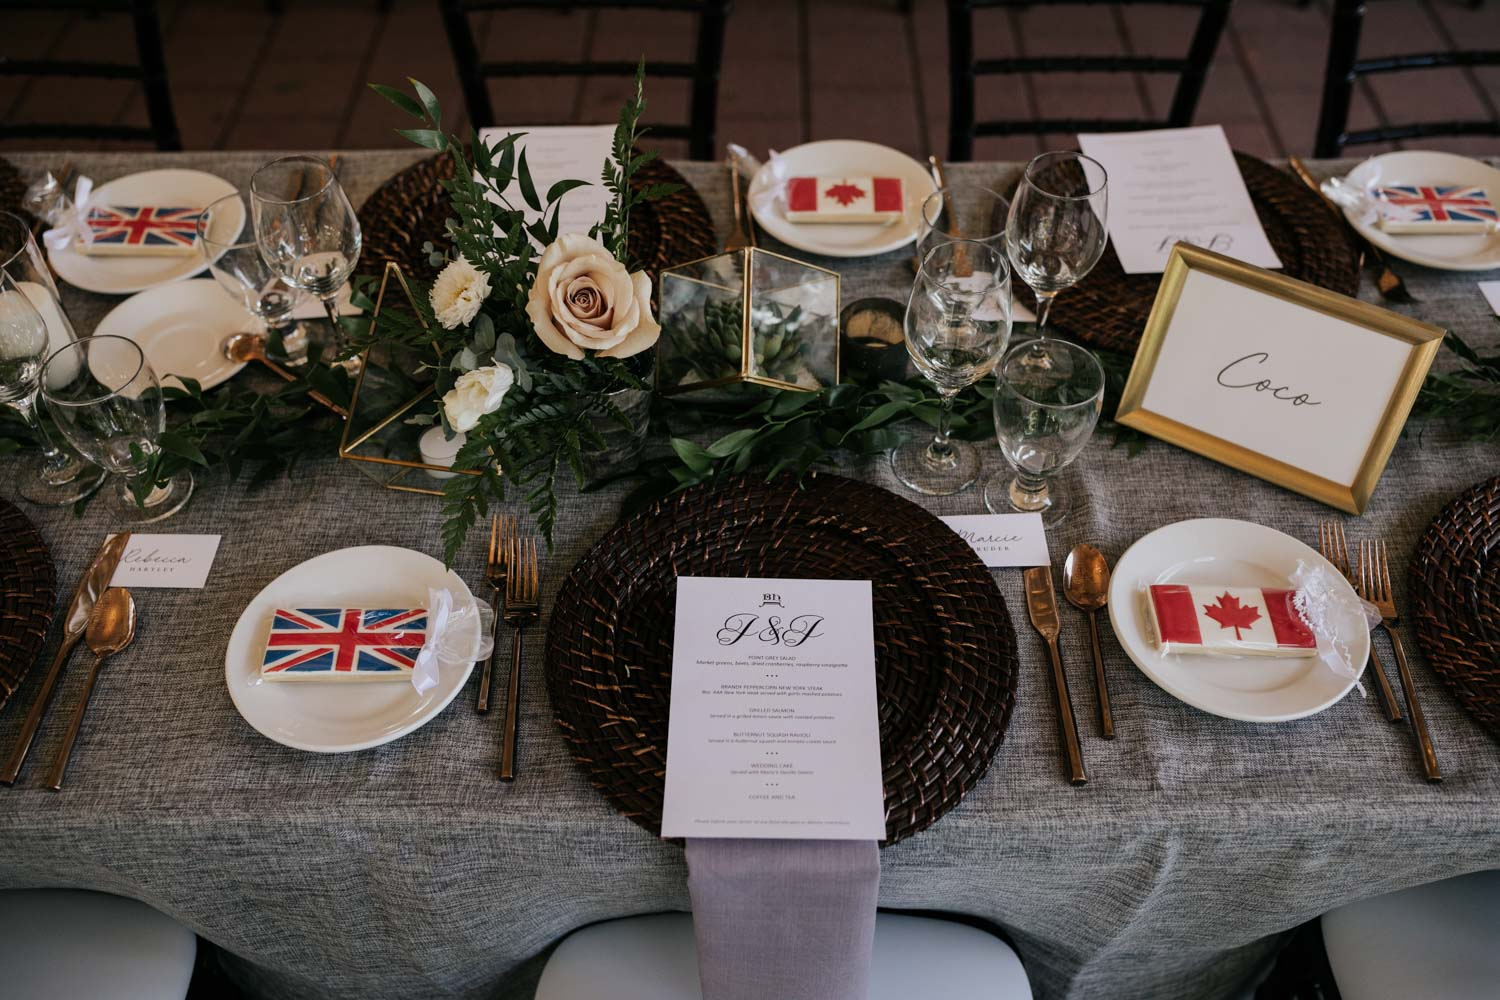 Country flag cookies are a great wedding favour idea for a couple getting from different nationalities such as Union Jack and Canadian flag cookies